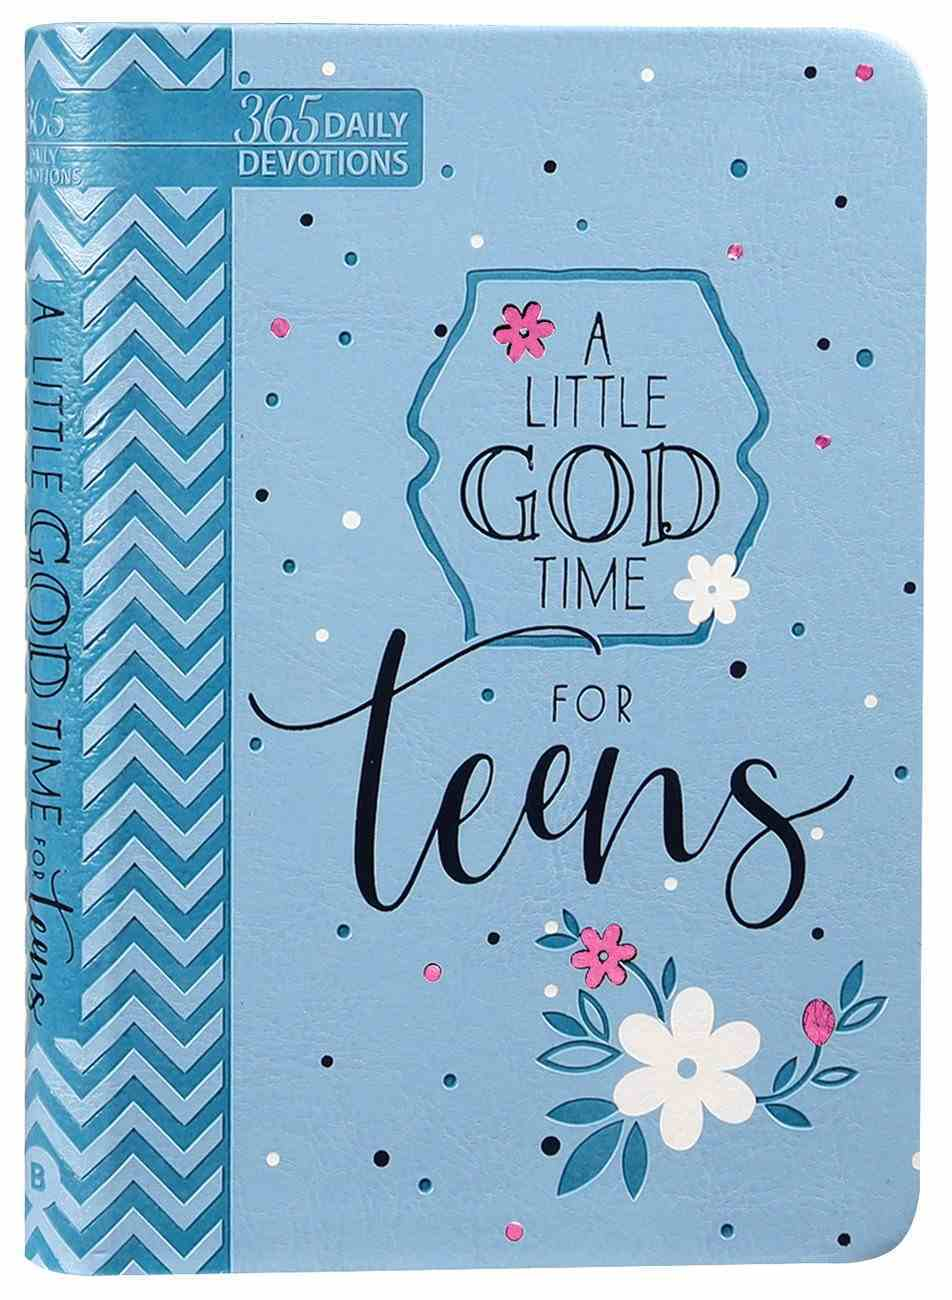 A Little God Time For Teens: 365 Daily Devotions Imitation Leather